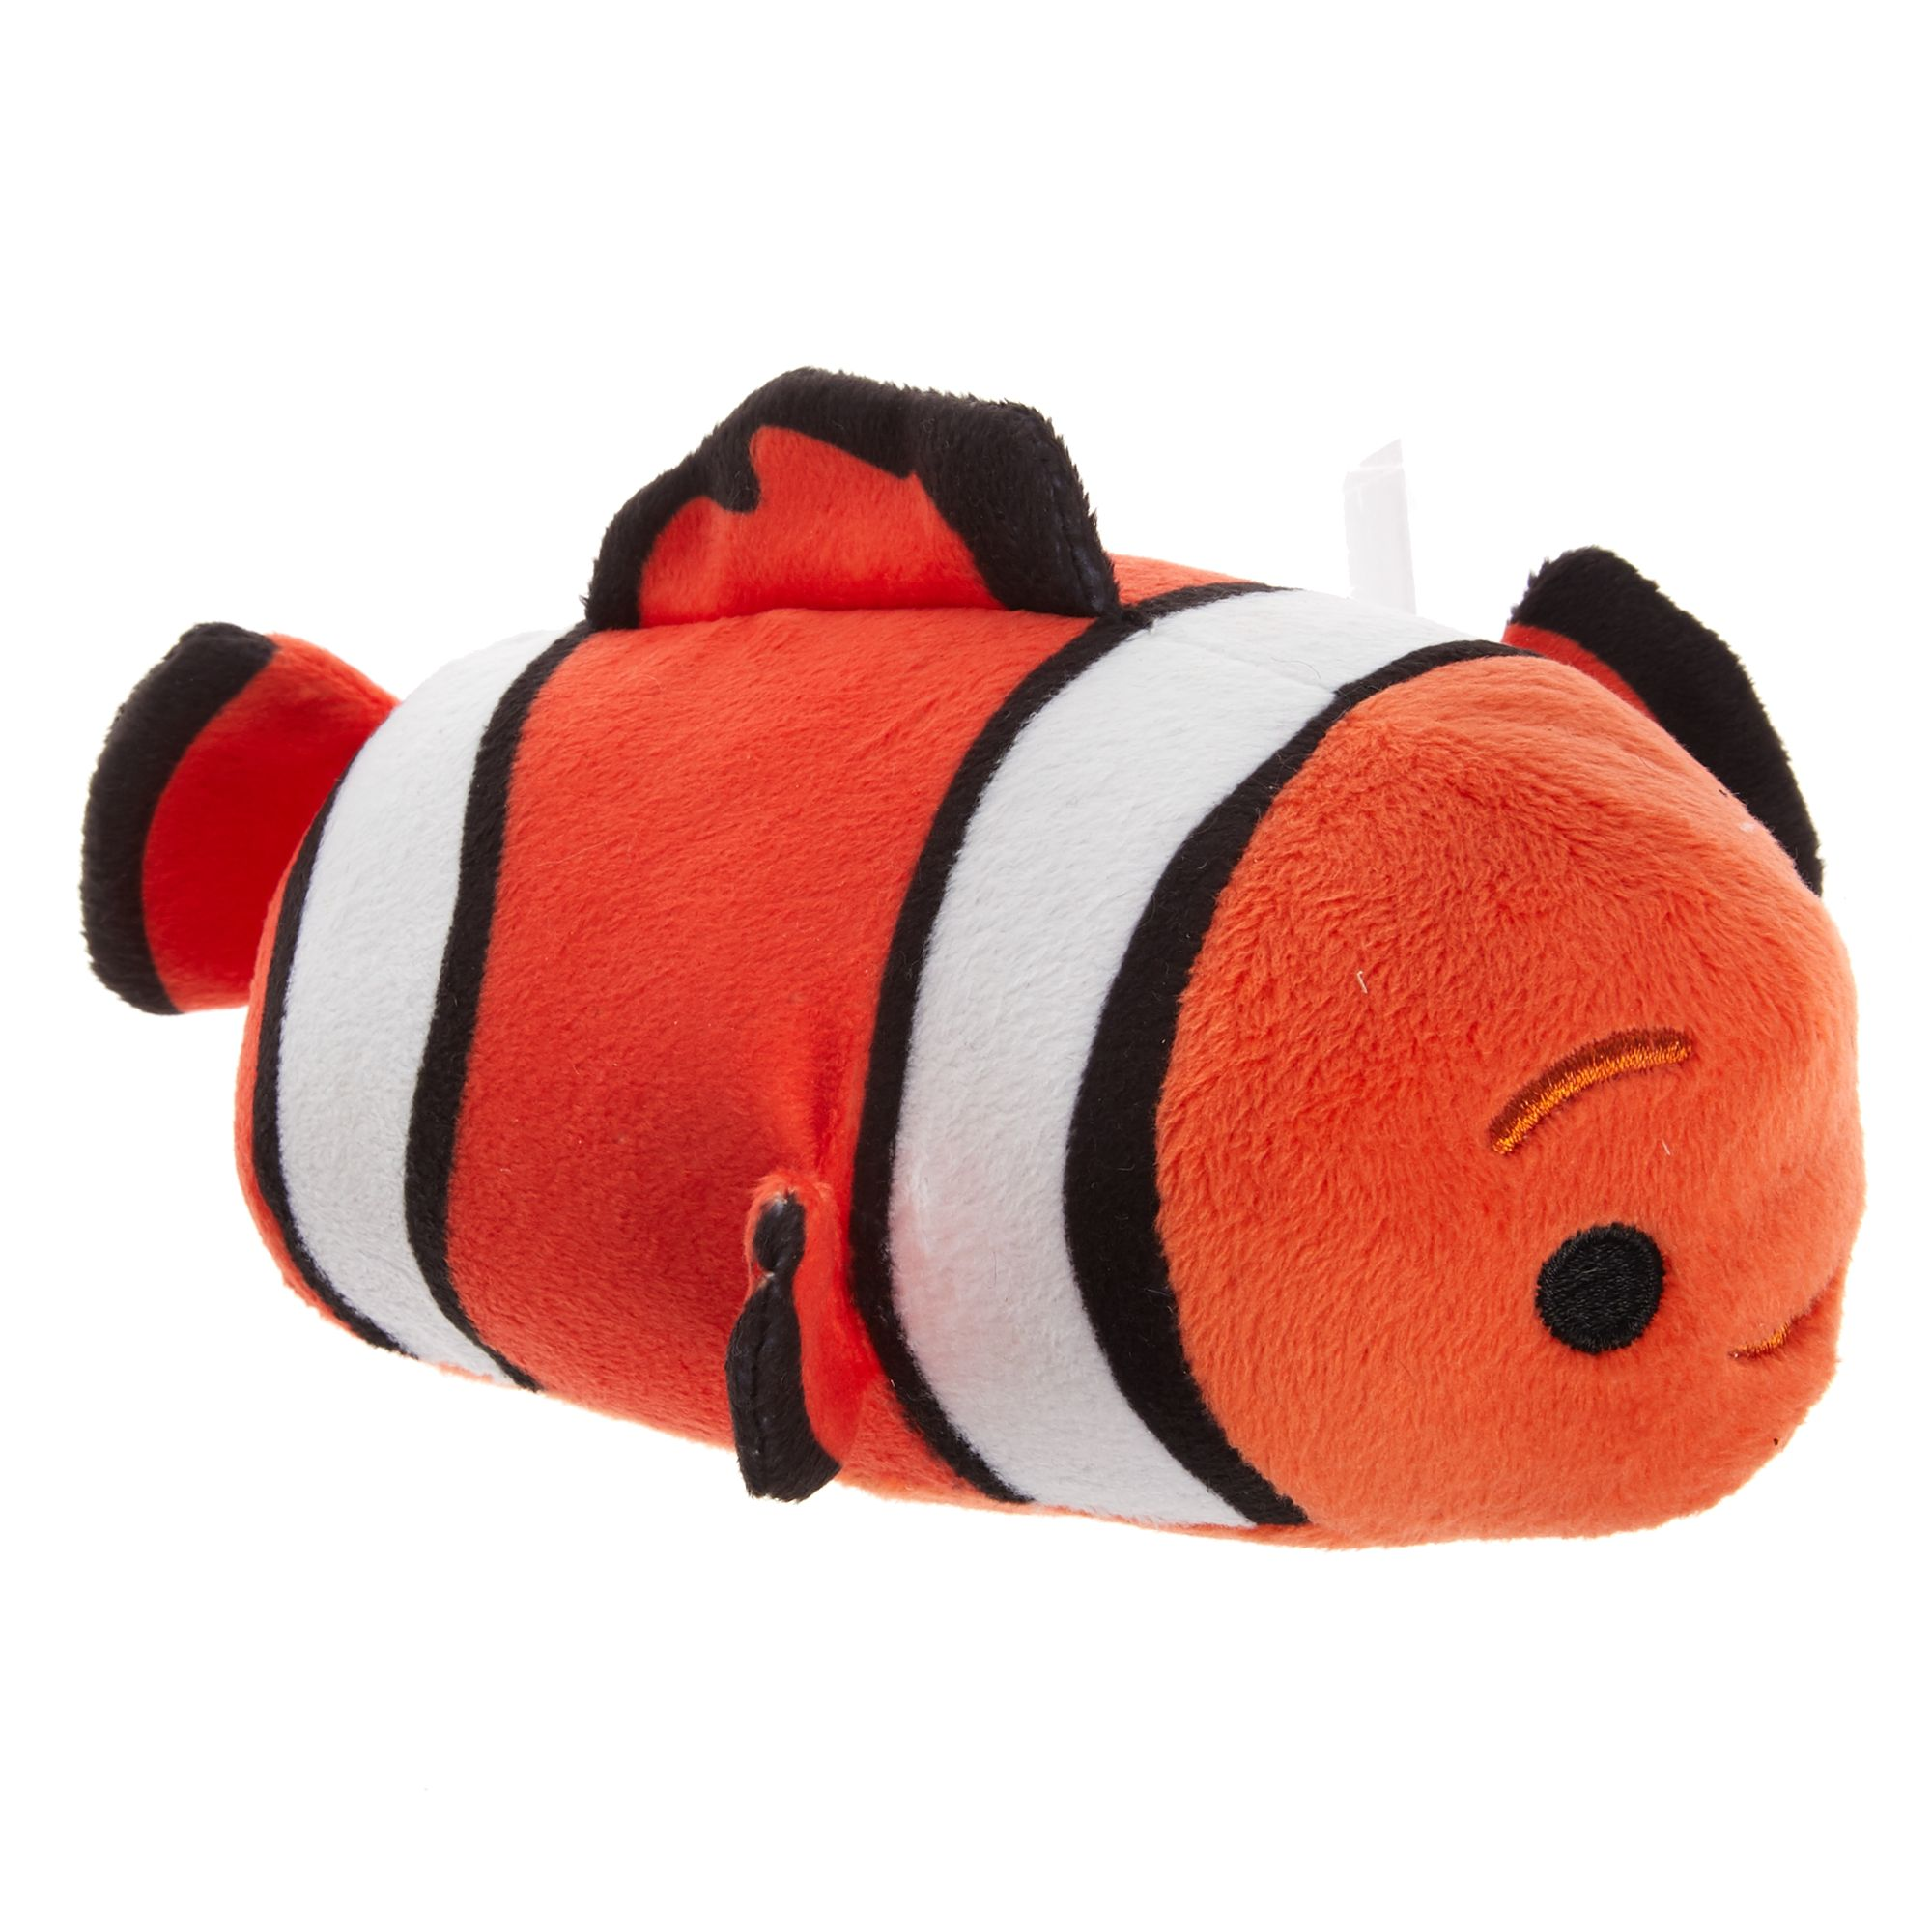 "Disney Nemo ""Tsum Tsum"" Dog Toy - Plush, Squeaker size: Large 5274246"